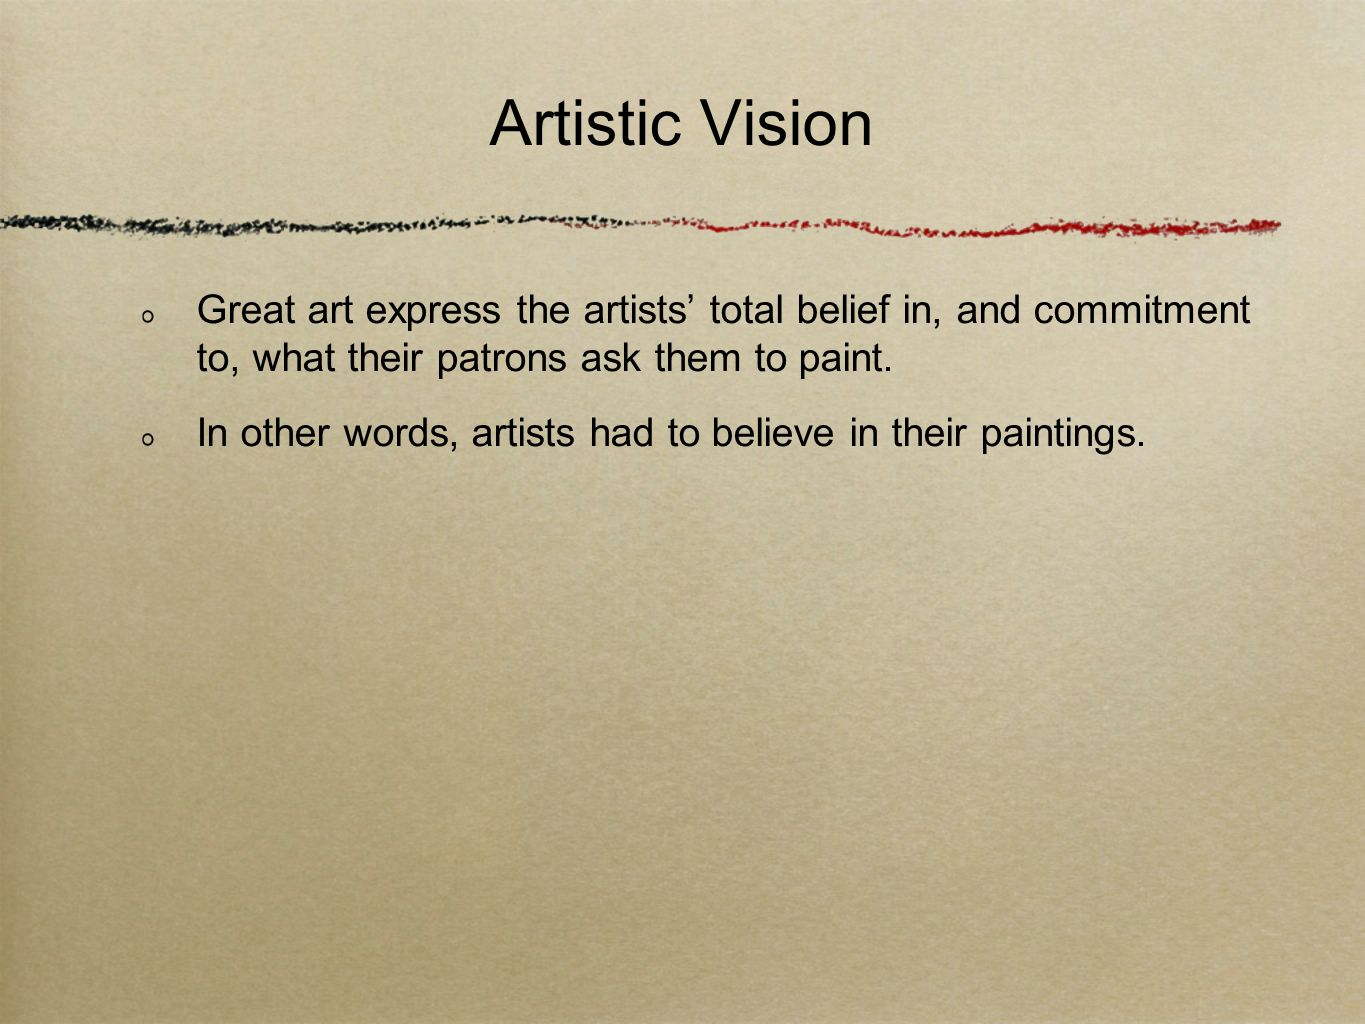 Artistic Vision Great art express the artists' total belief in, and commitment to, what their patrons ask them to paint.